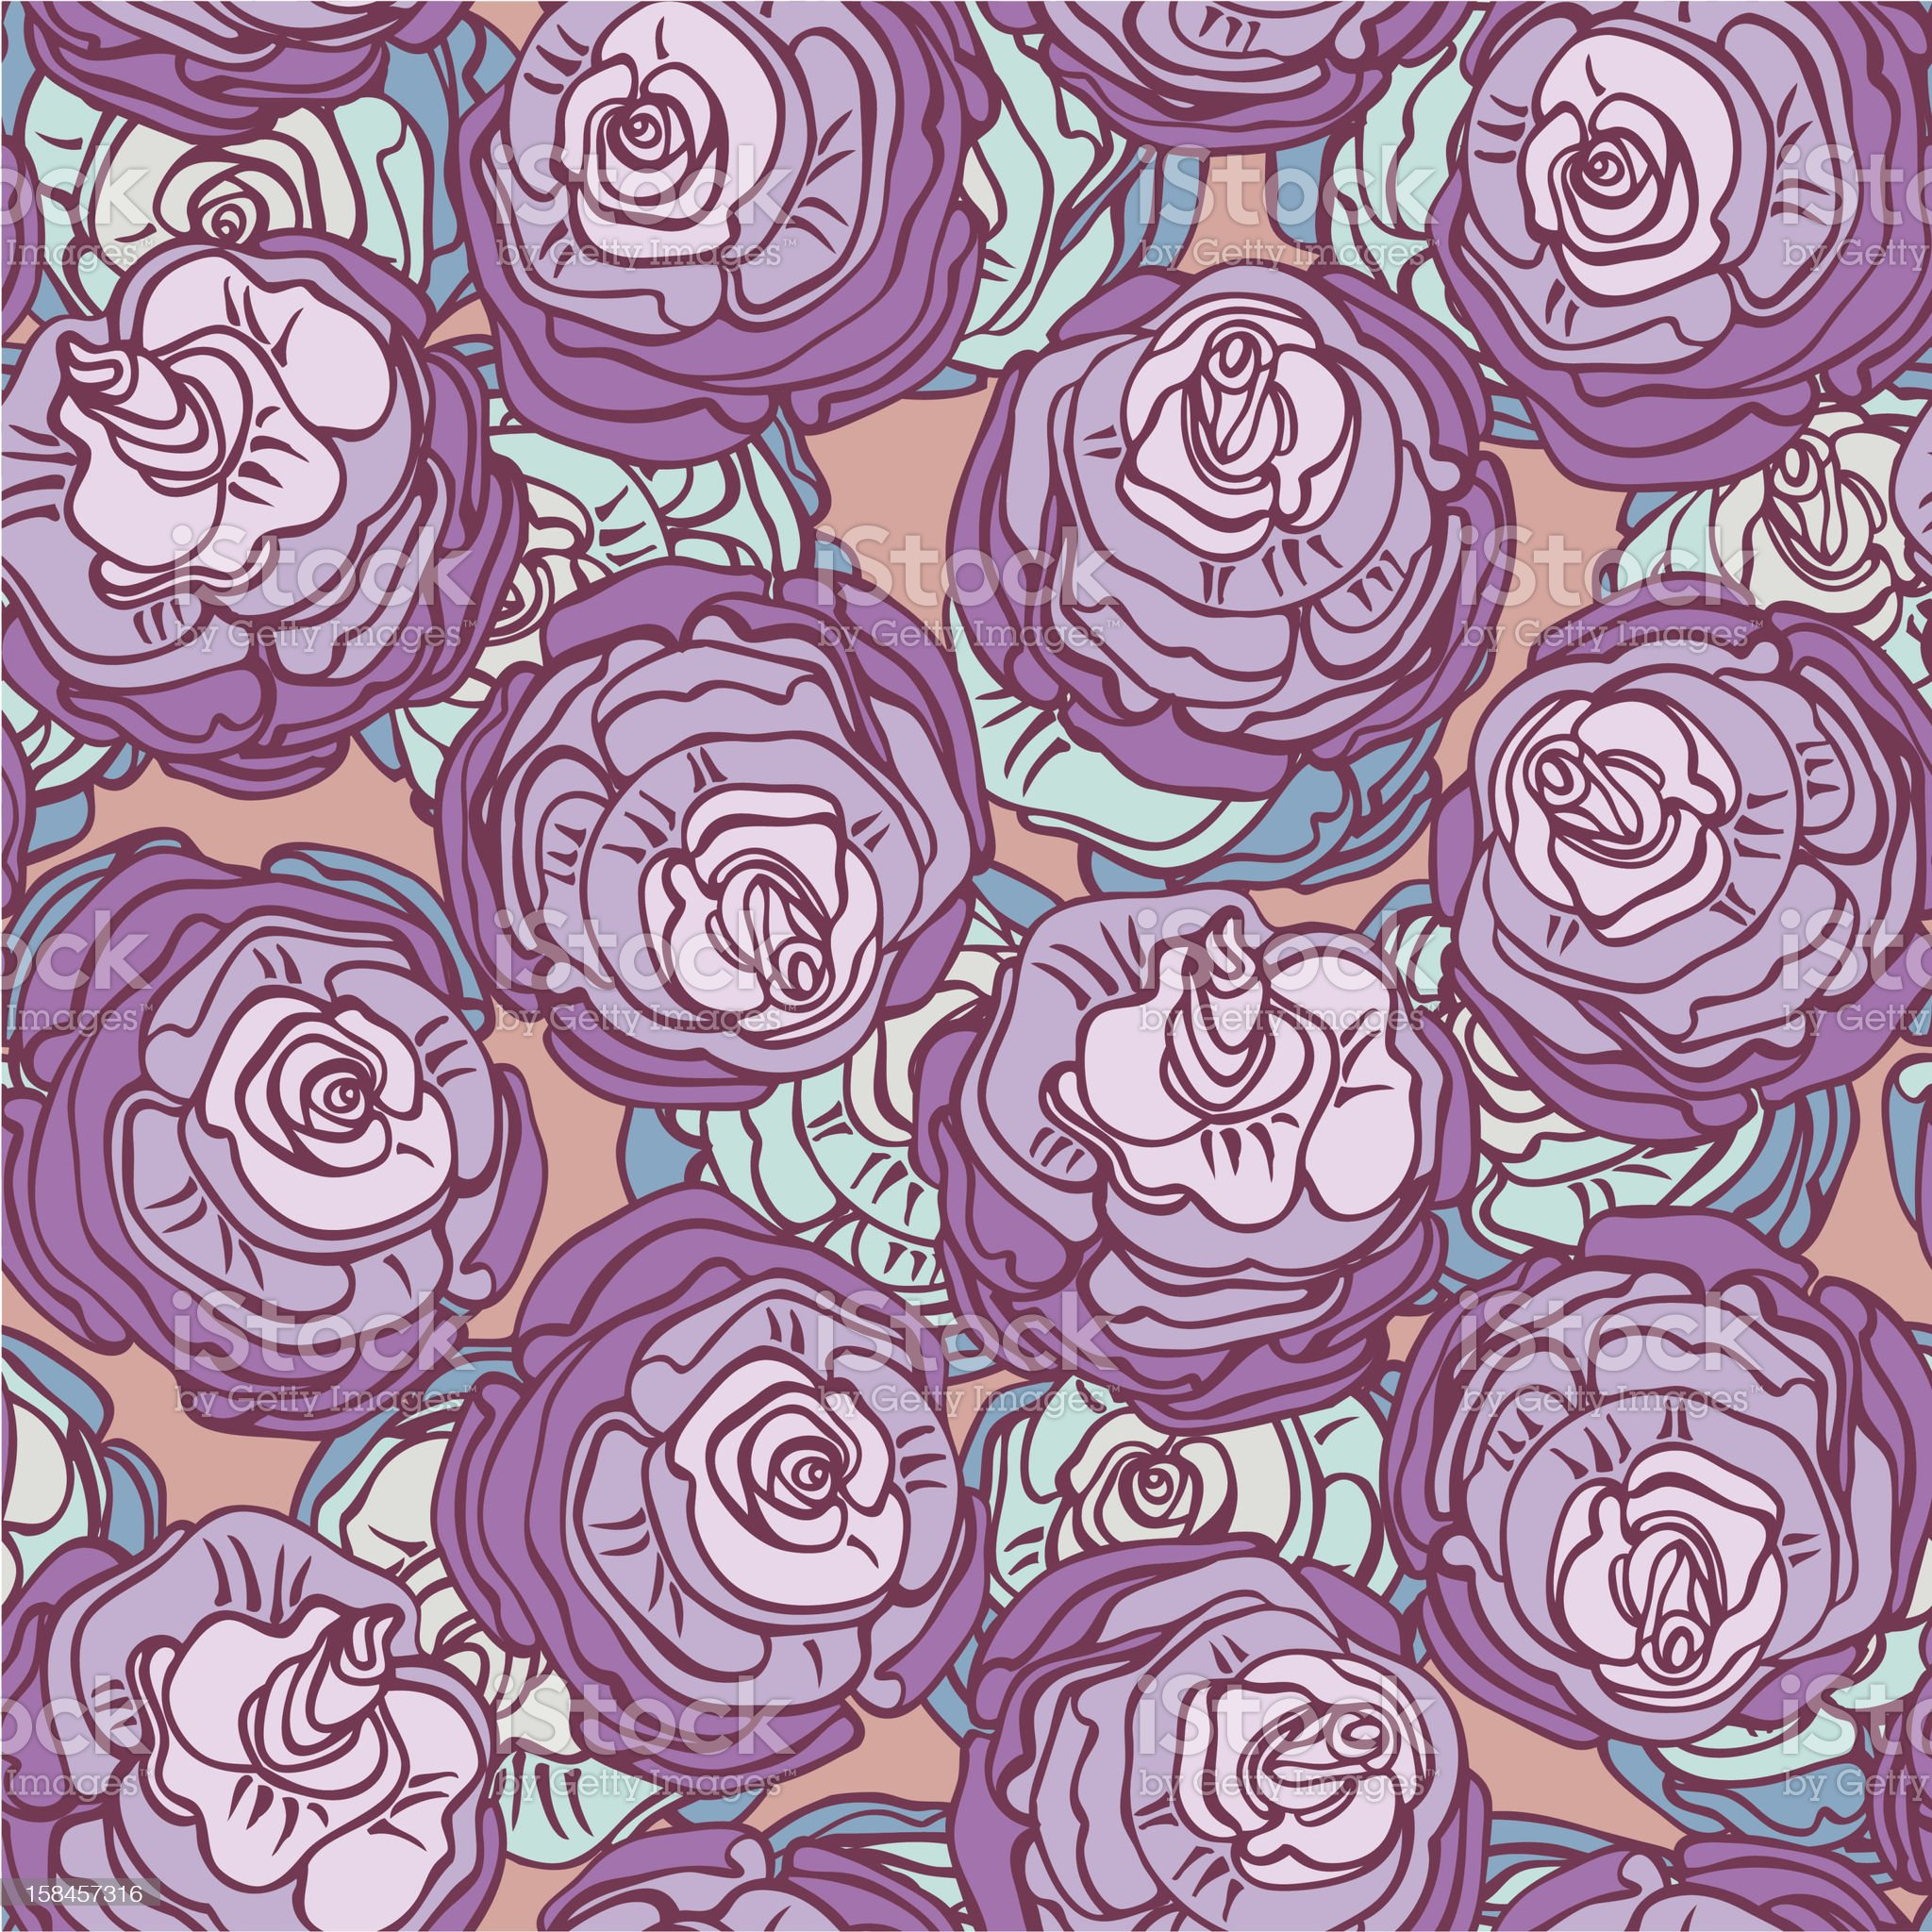 rose buds pattern royalty-free stock vector art